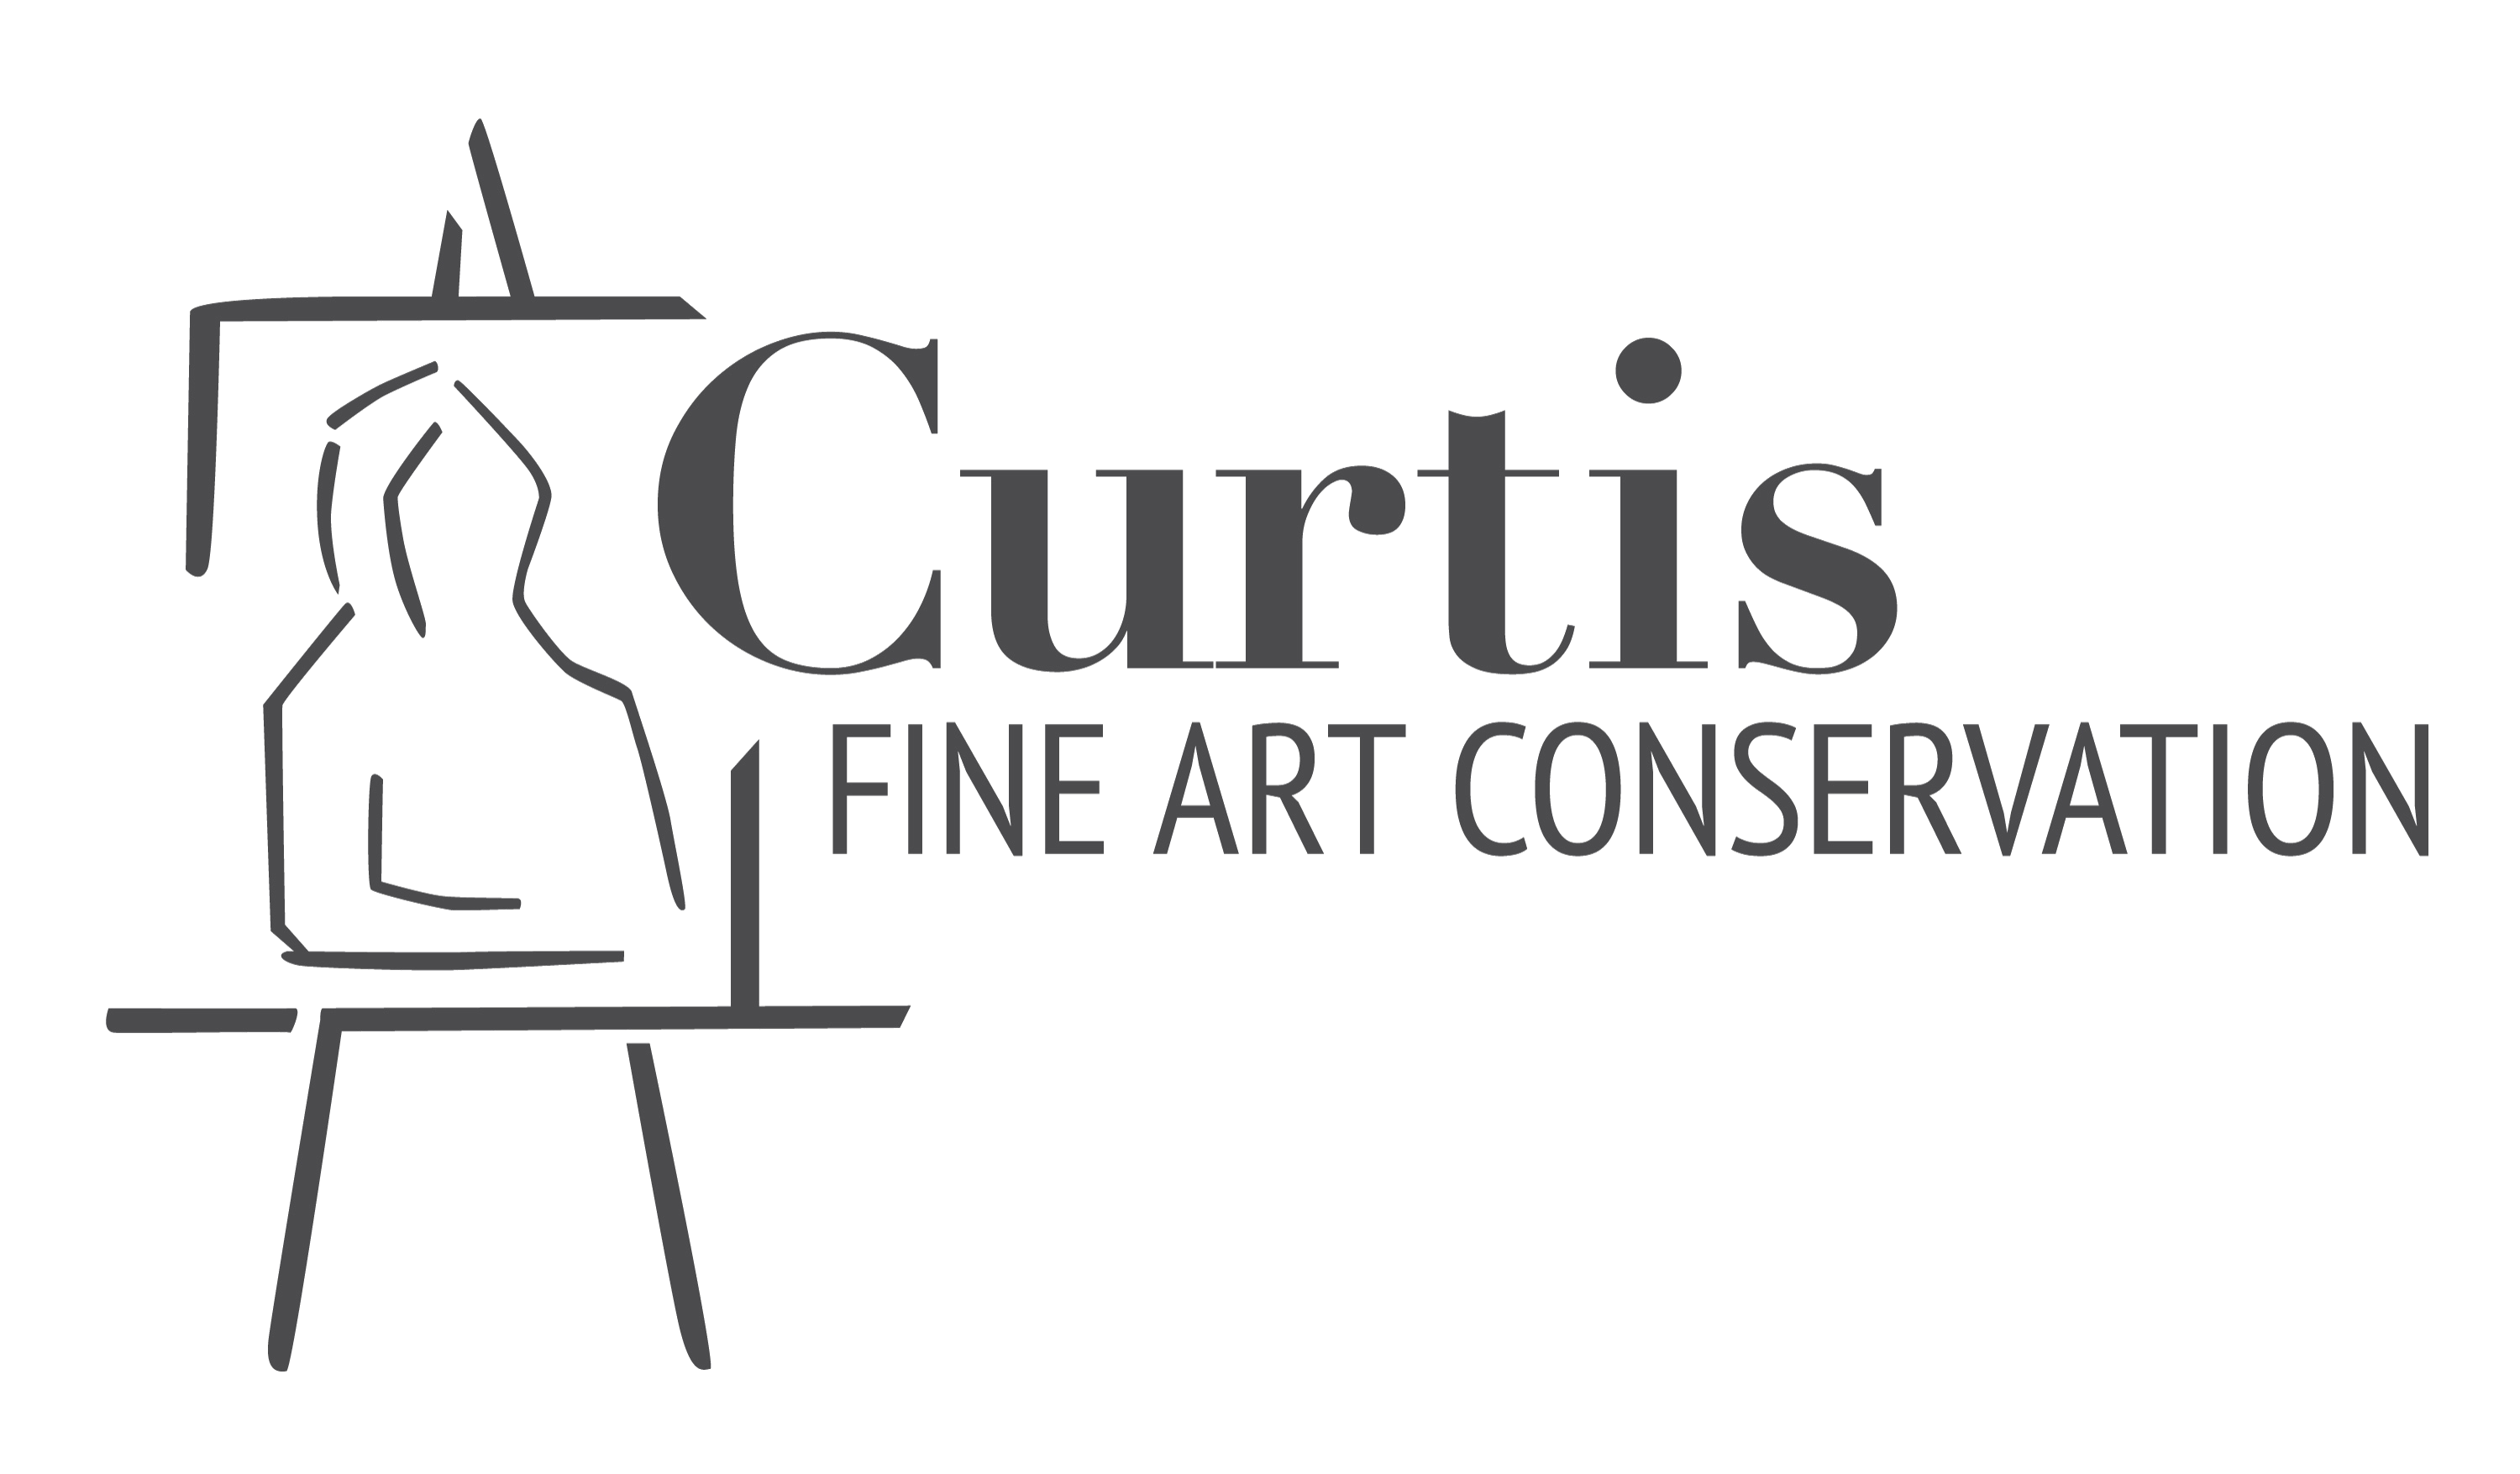 Curtis Fine Art Conservation, LLC